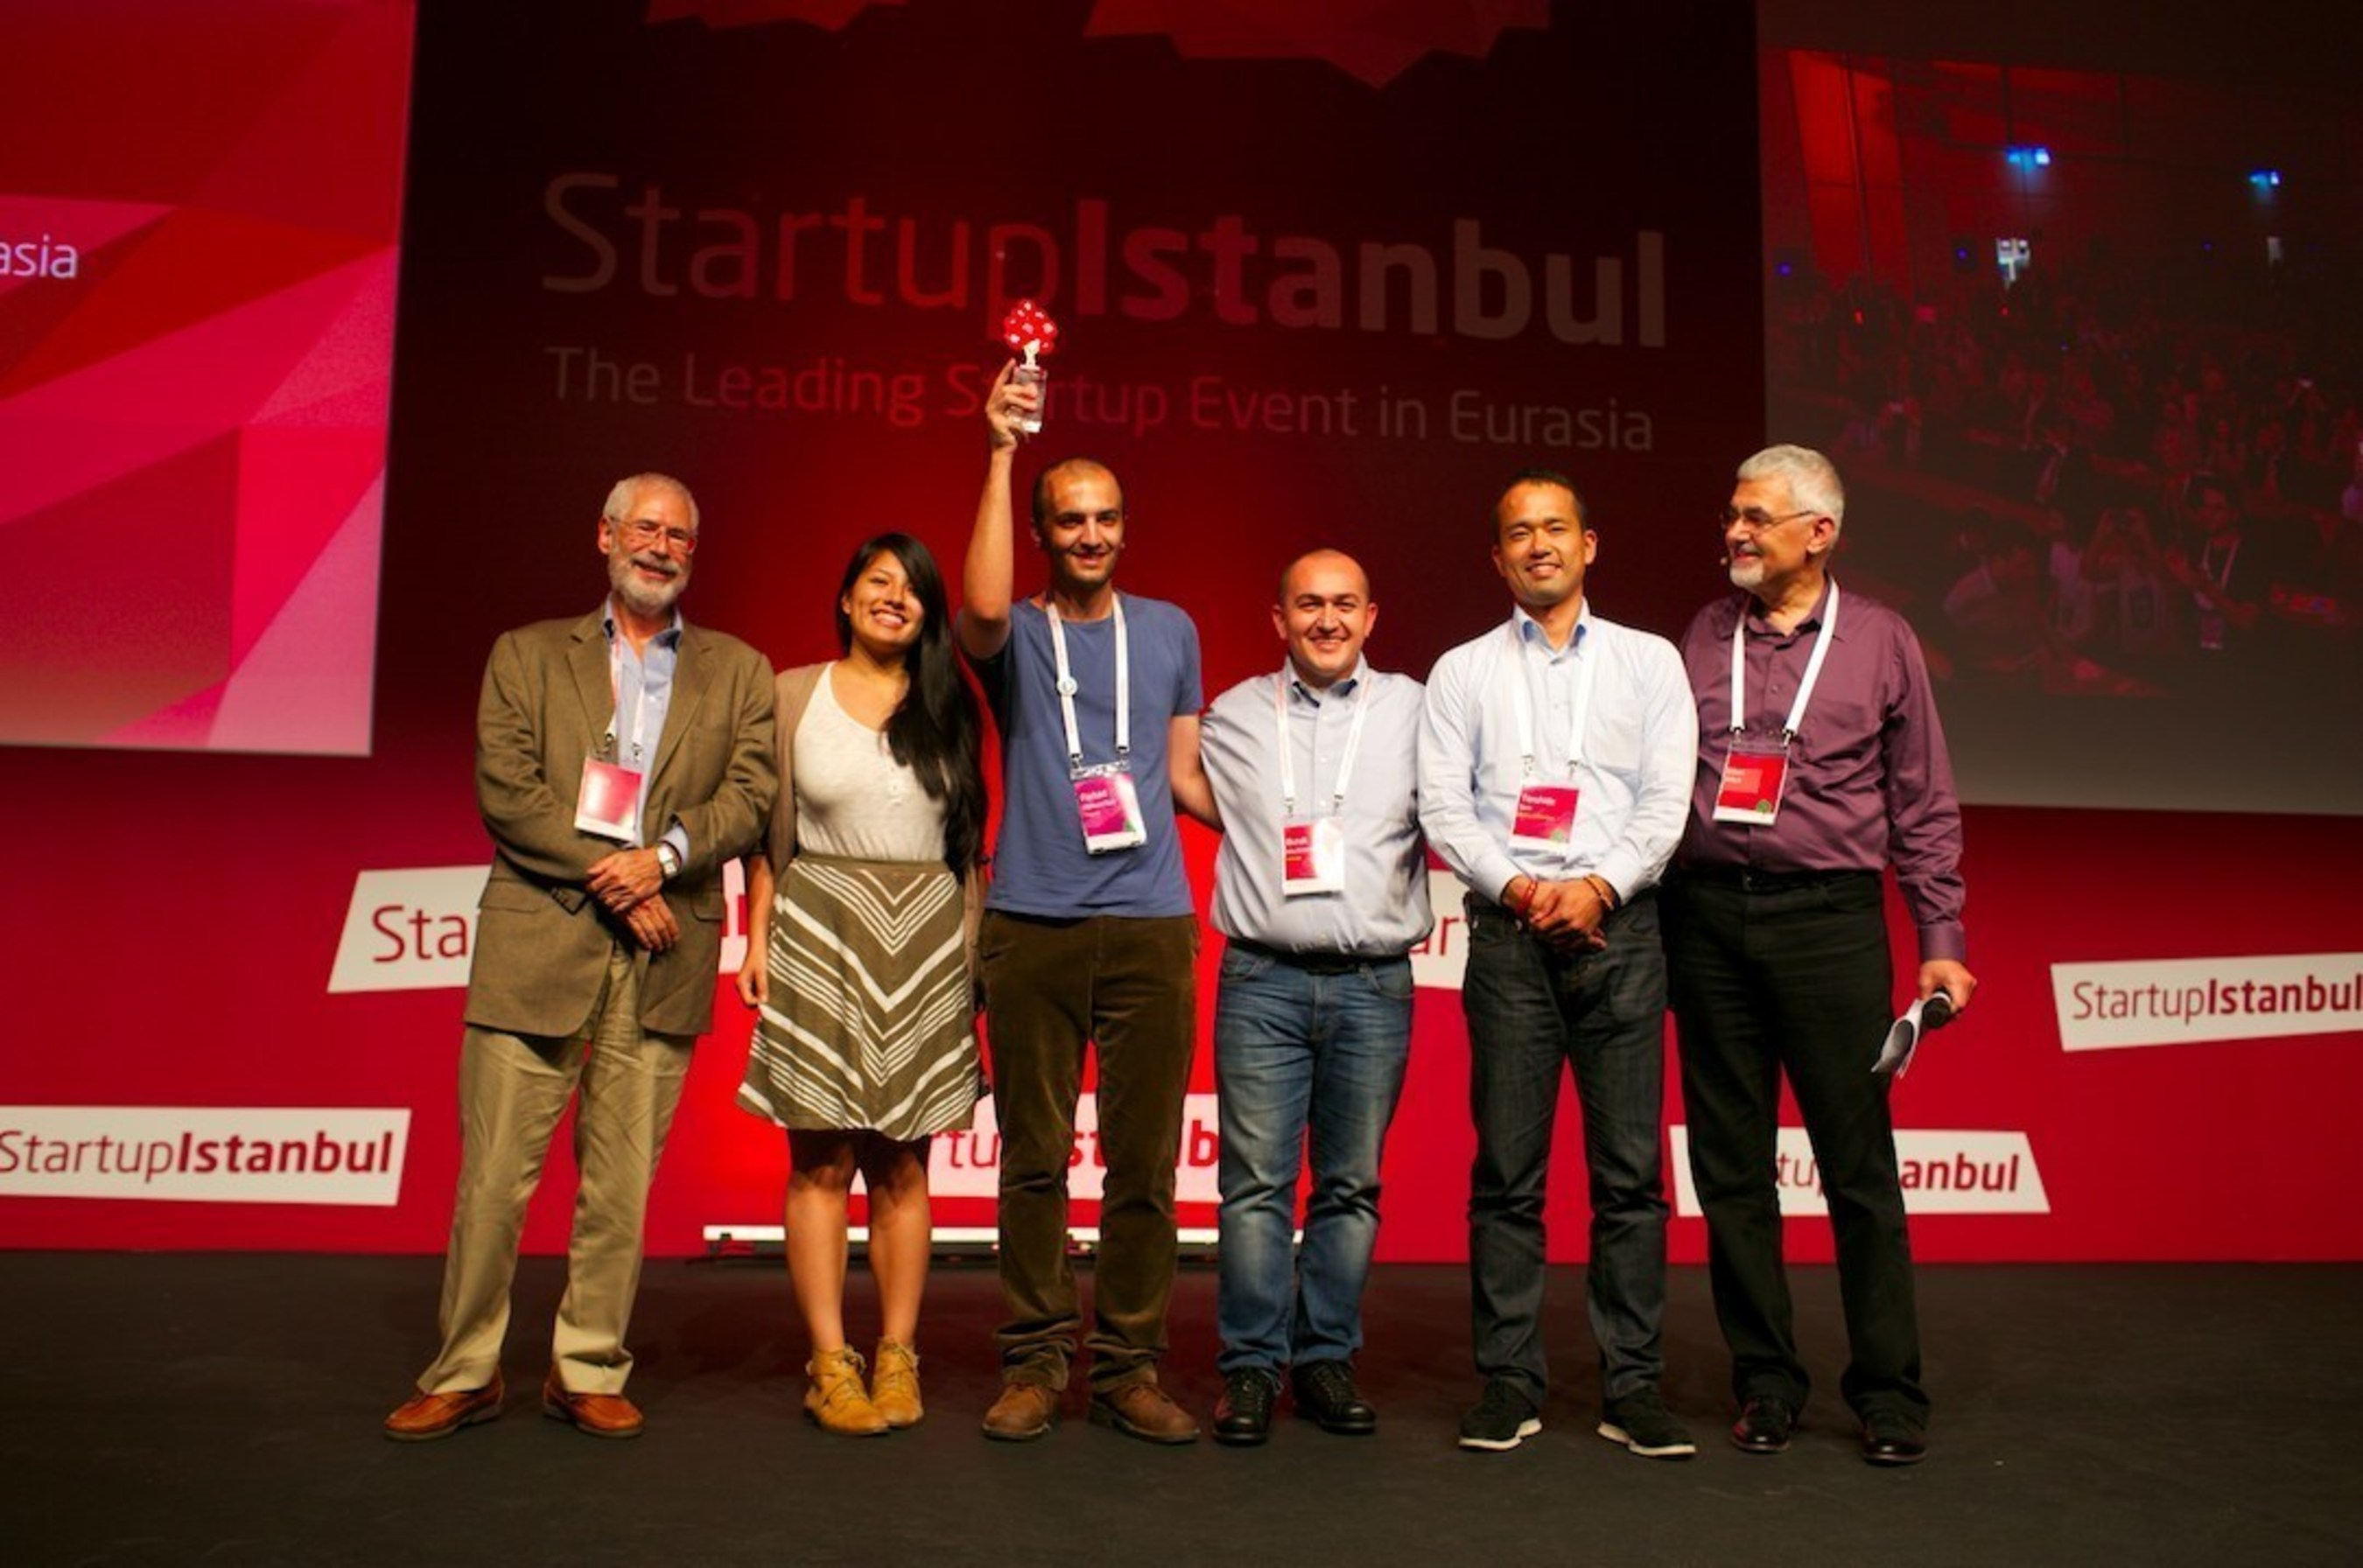 Taskulu.com, an Iranian Online Project Collaboration Platform, Among the Top 3 Startups Selected at Startup Istanbul Challenge 2015